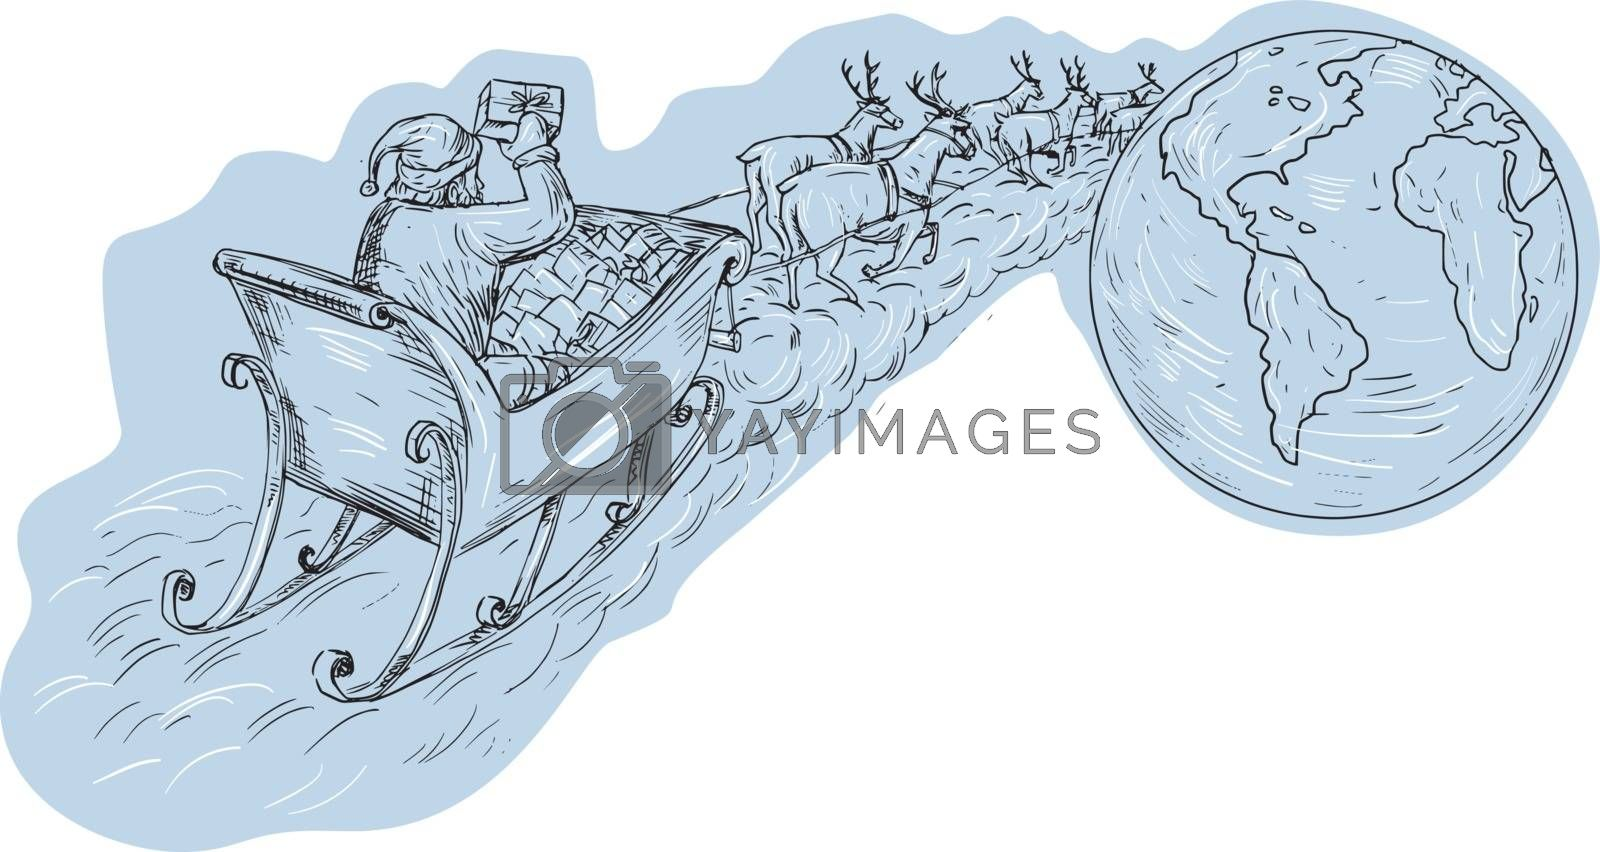 Drawing sketch style illustration of santa on a sleigh with reindeers delivering gifts aournd the world viewed from the rear.